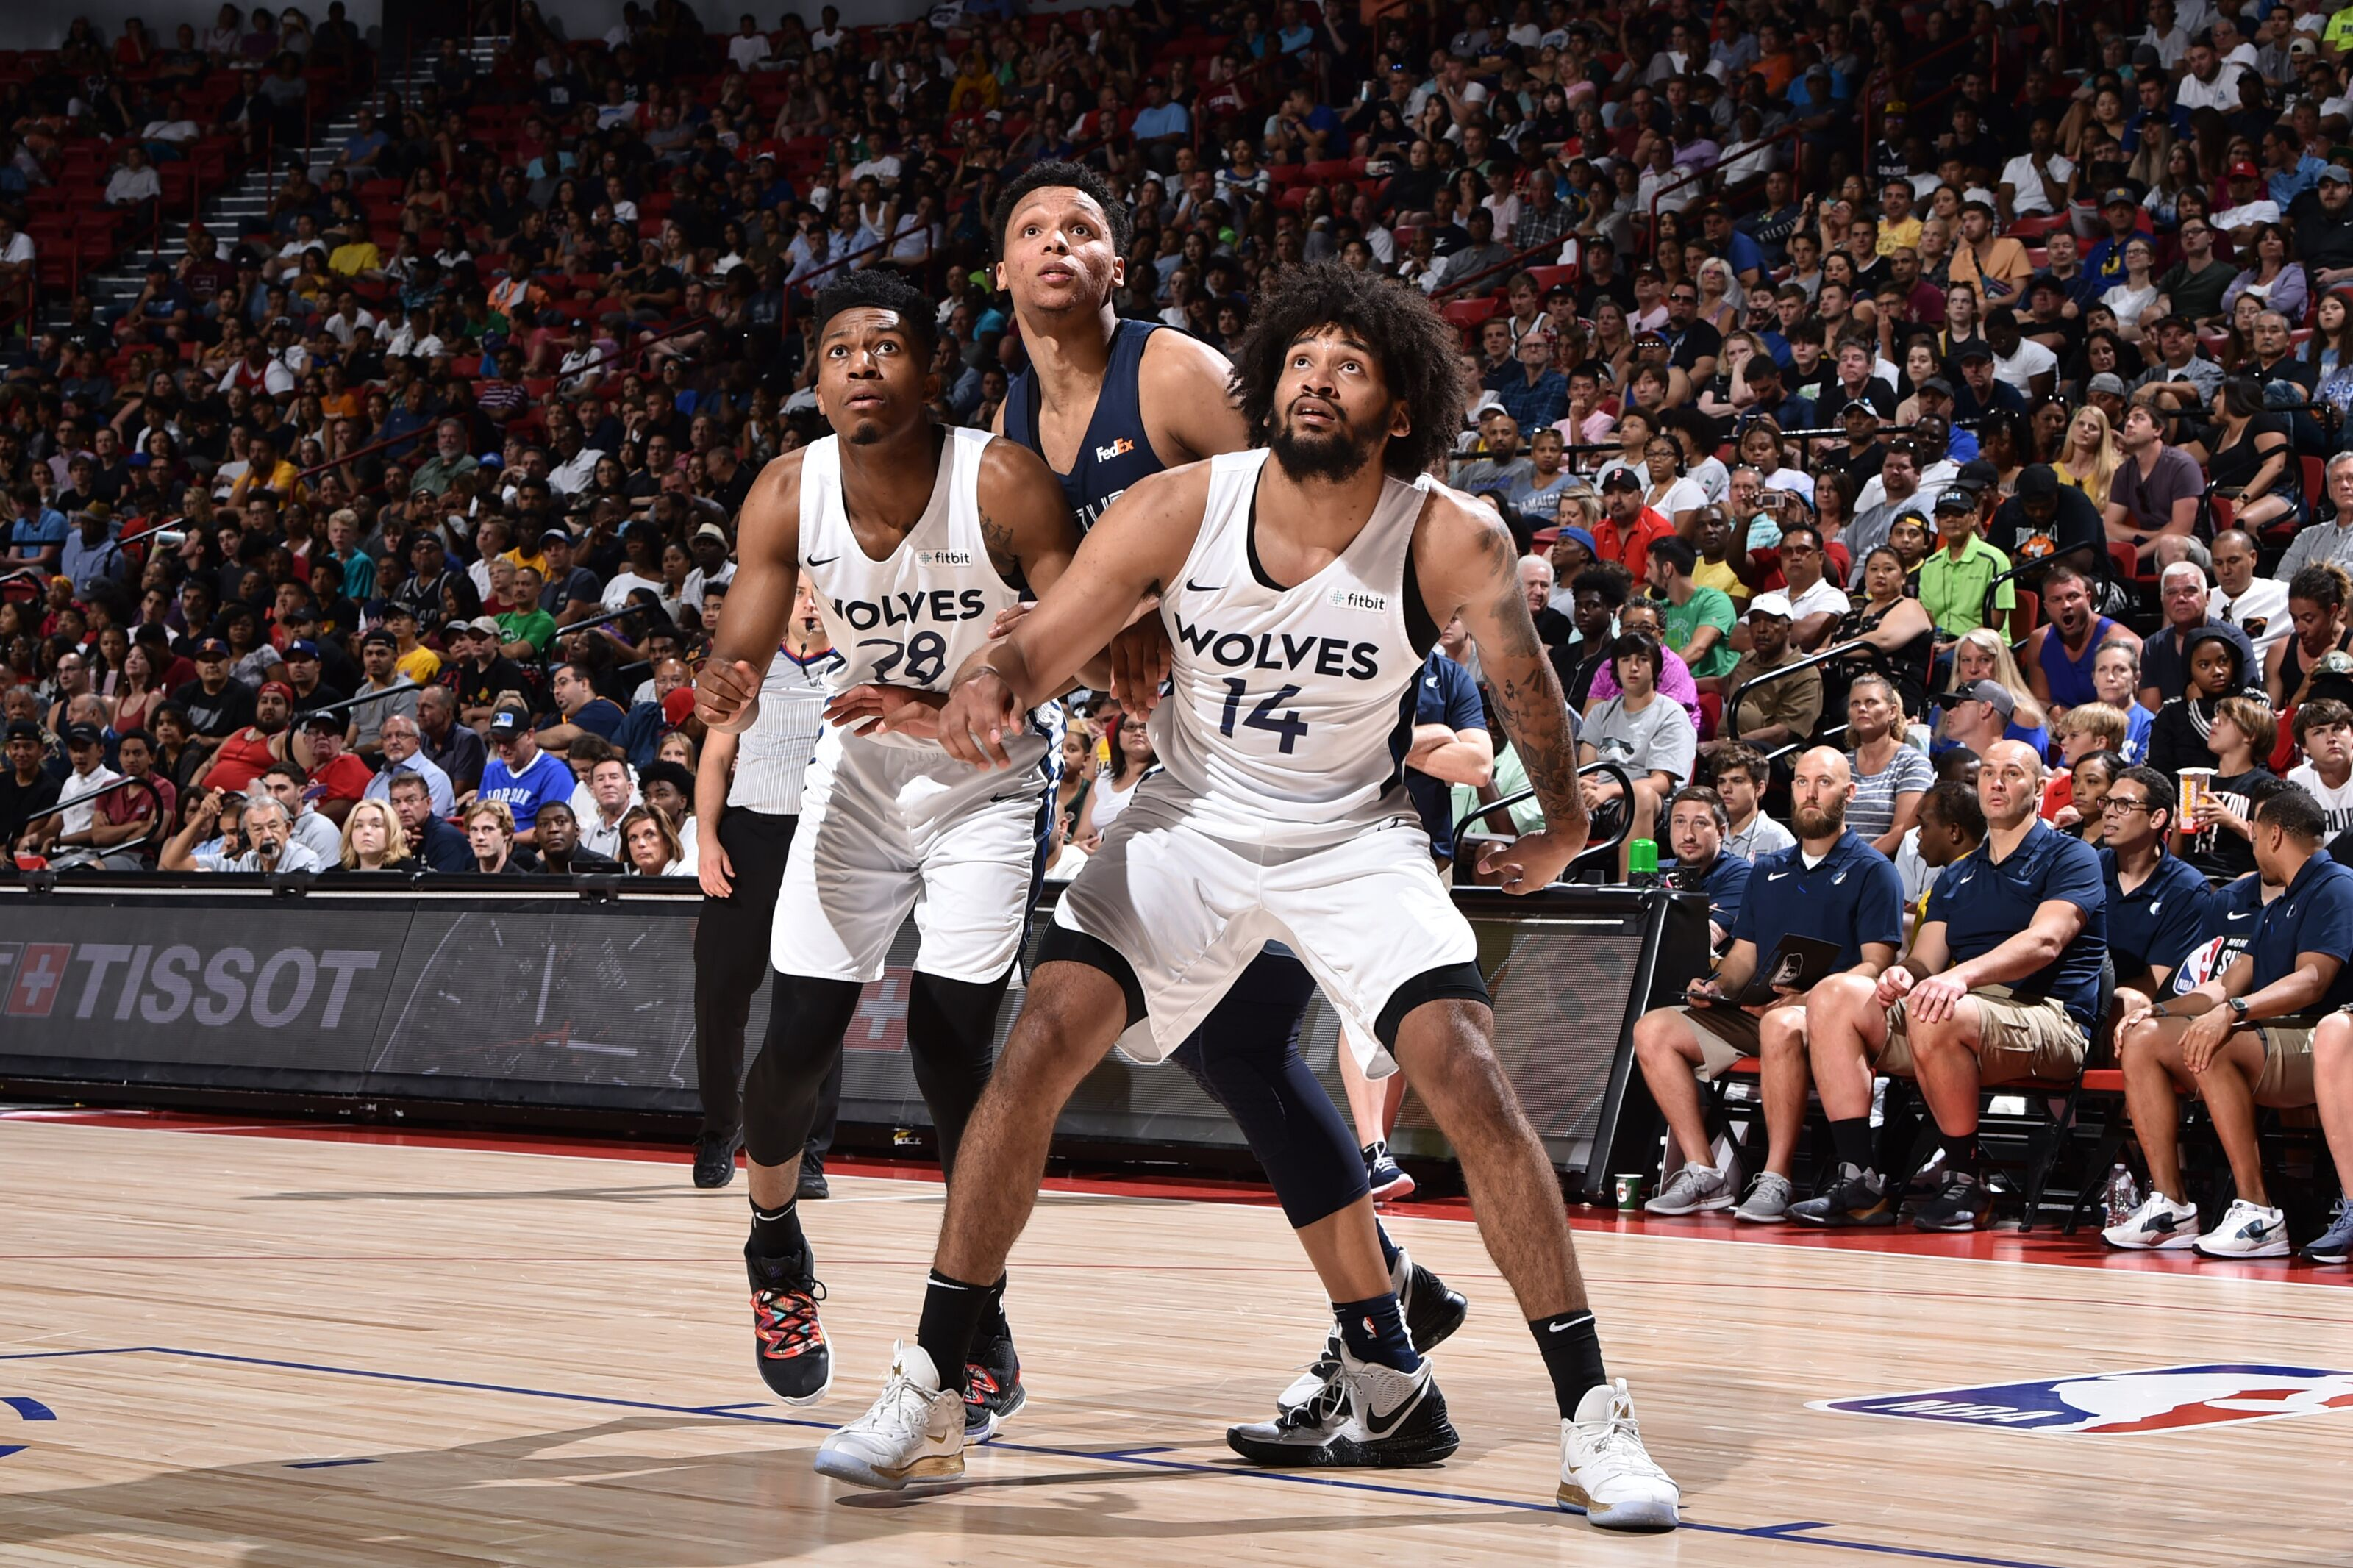 Minnesota Timberwolves sign two new guards and waive two players